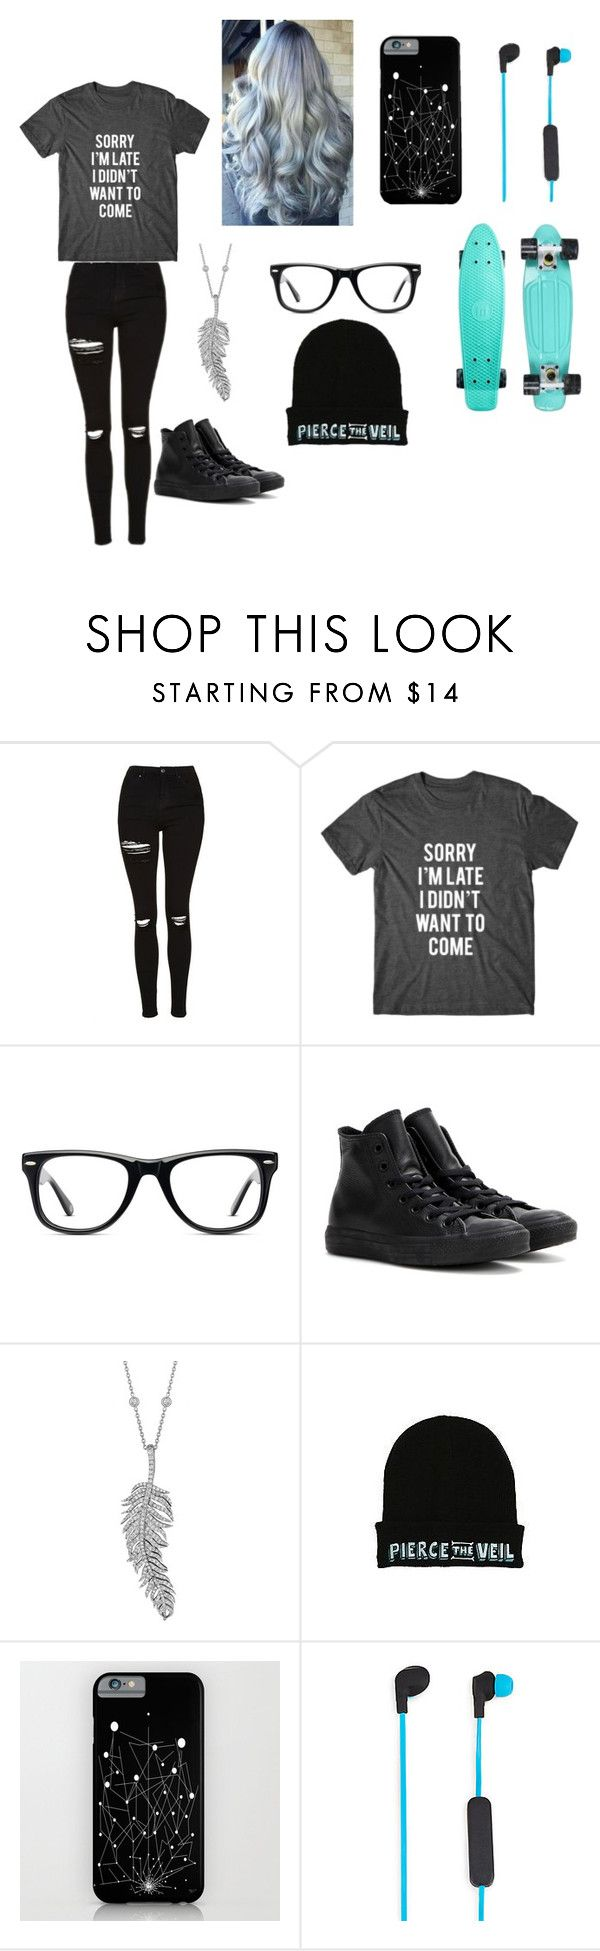 """The I Don't Care Look"" by arly-lopez on Polyvore featuring Topshop, Muse, Converse, Penny Preville and Merkury Innovations"